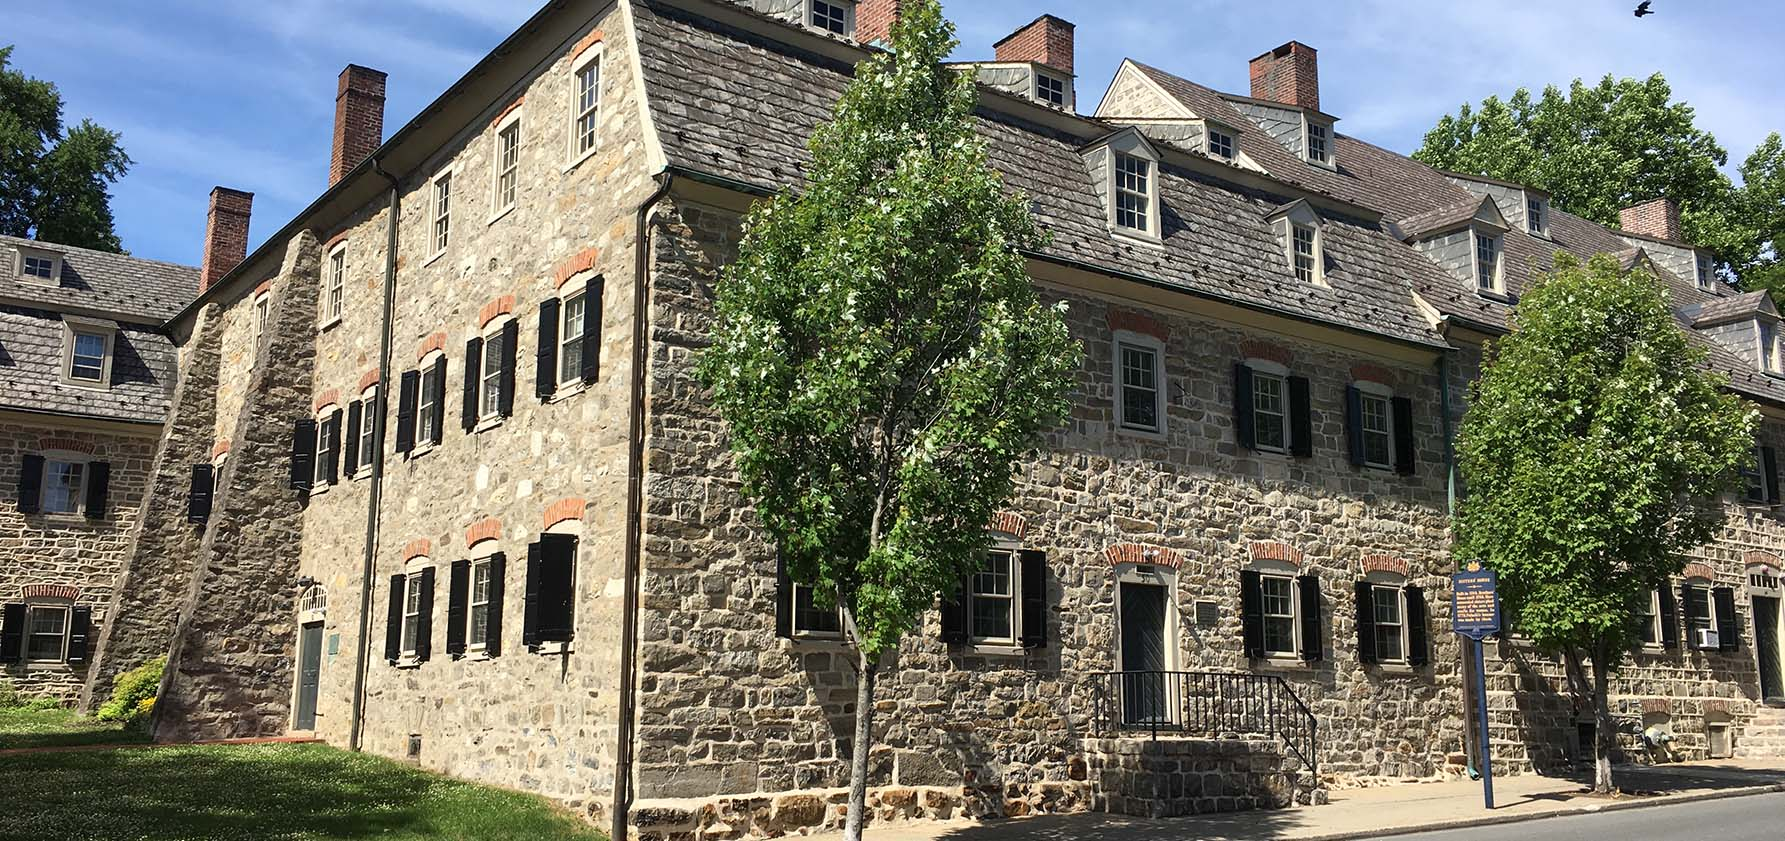 The Journey from Bethlehem to Salem will begin at the Single Sisters' House on Church Street in Bethlehem.